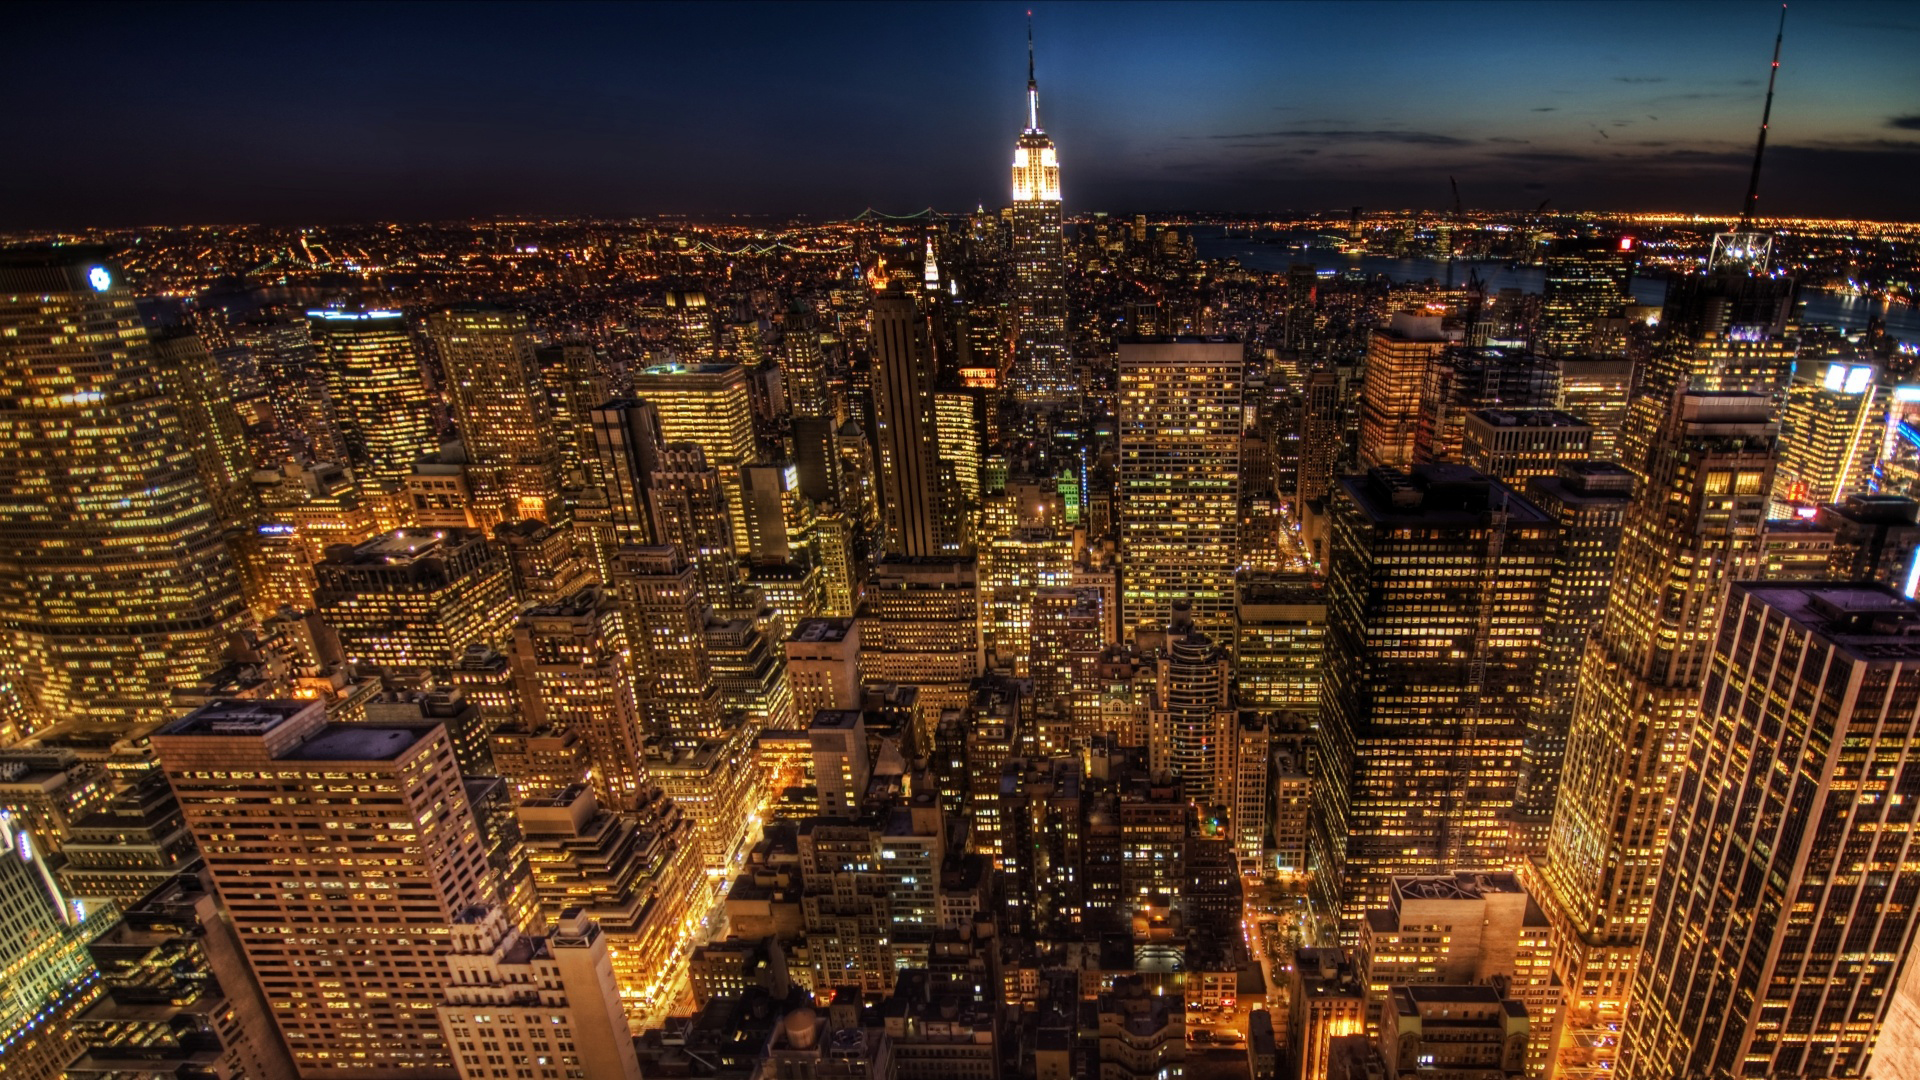 What a night in New York City looks like from 7,500 feet - Mashable Manhattan photos at night